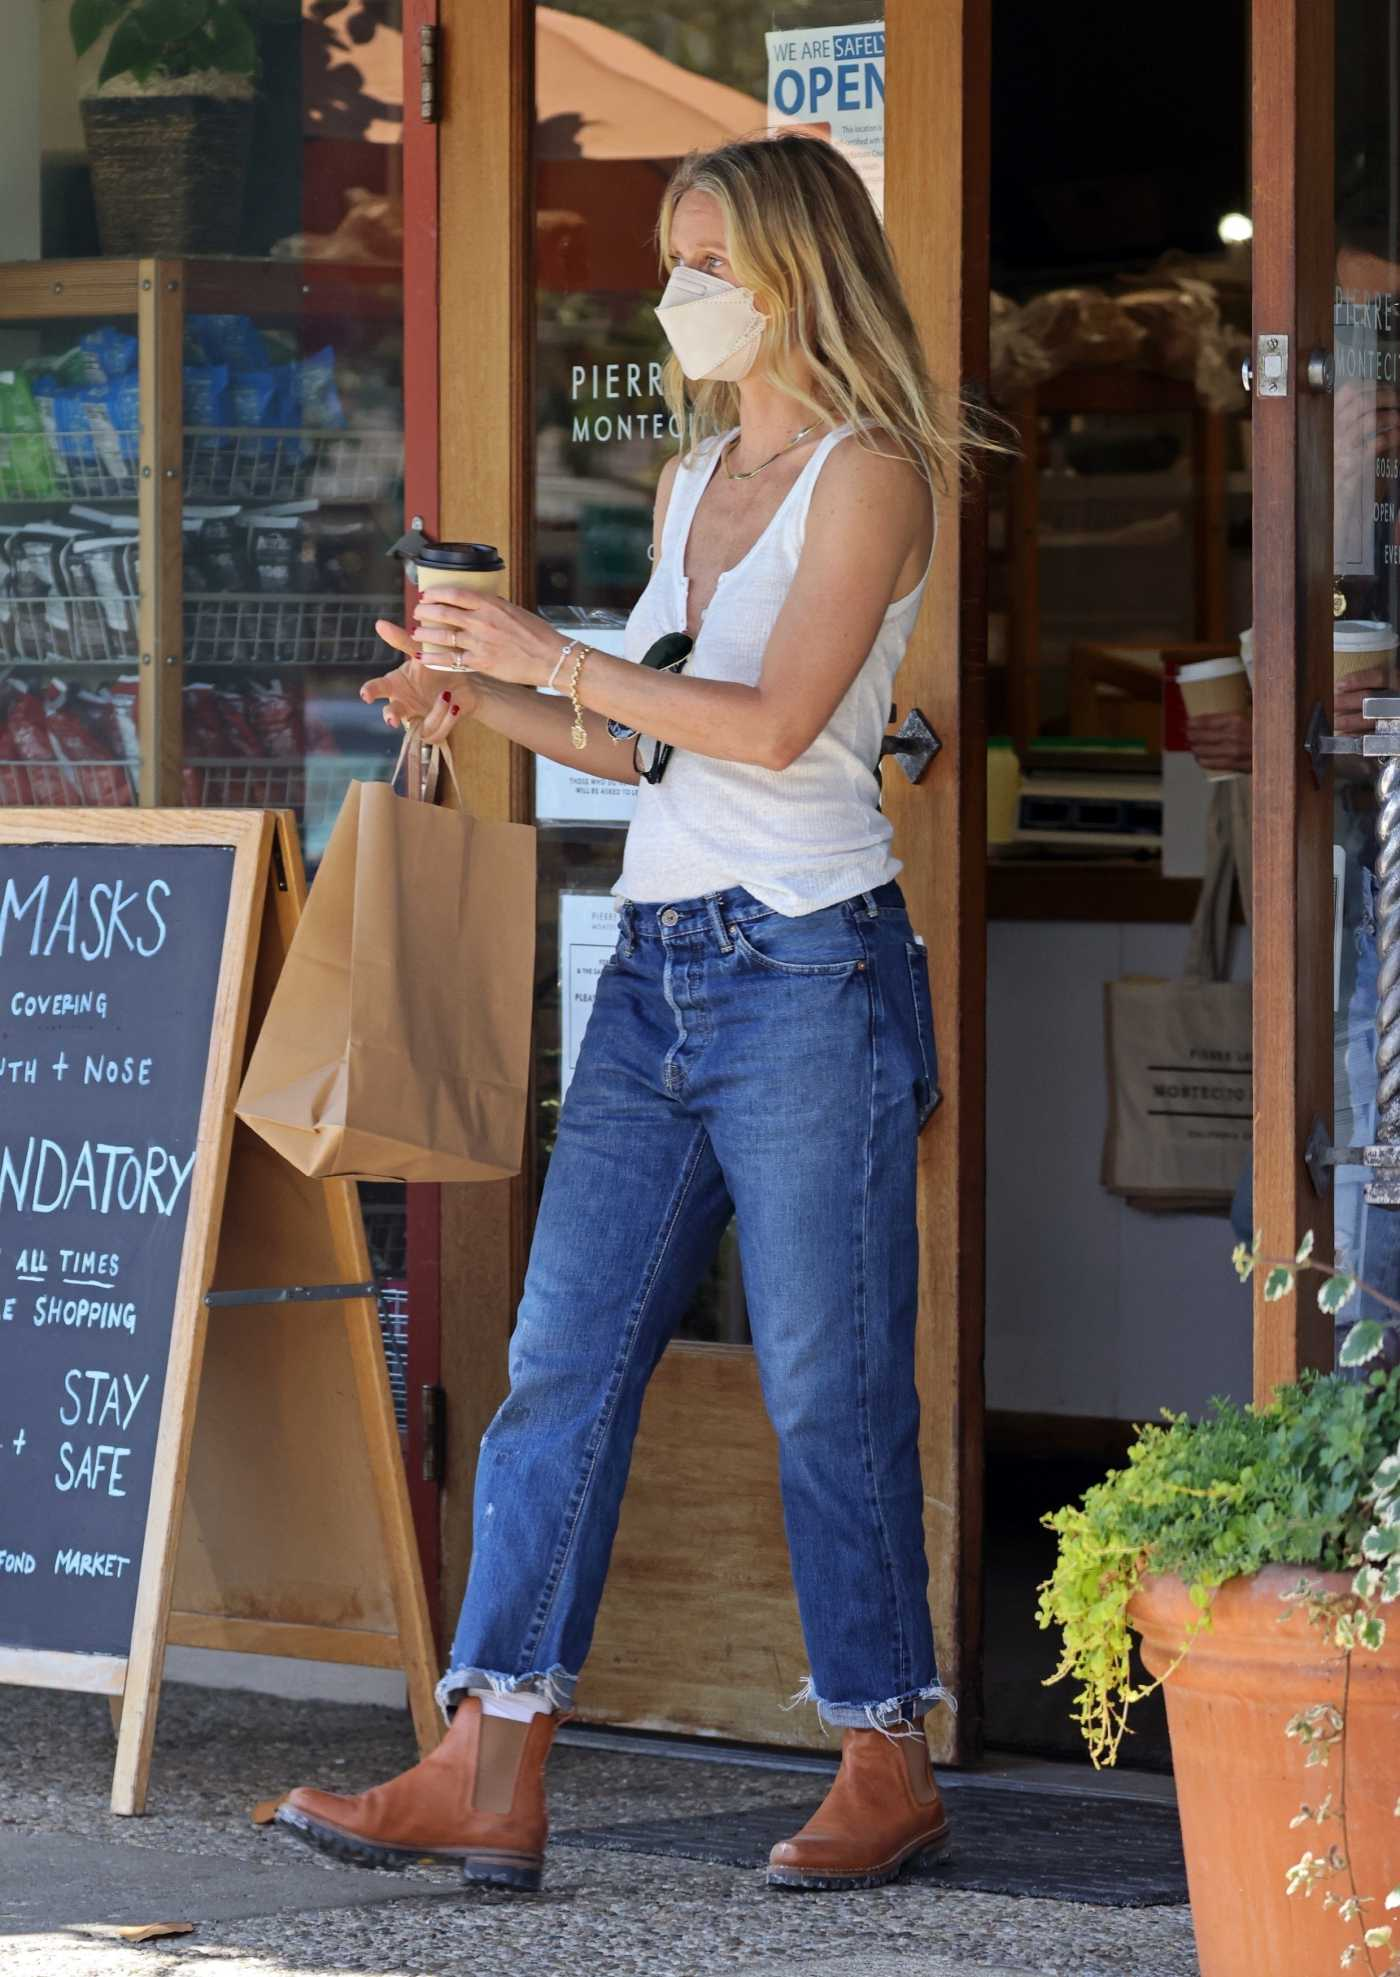 Gwyneth Paltrow in a White Top Hits Pierre Lafond in Montecito 06/08/2021